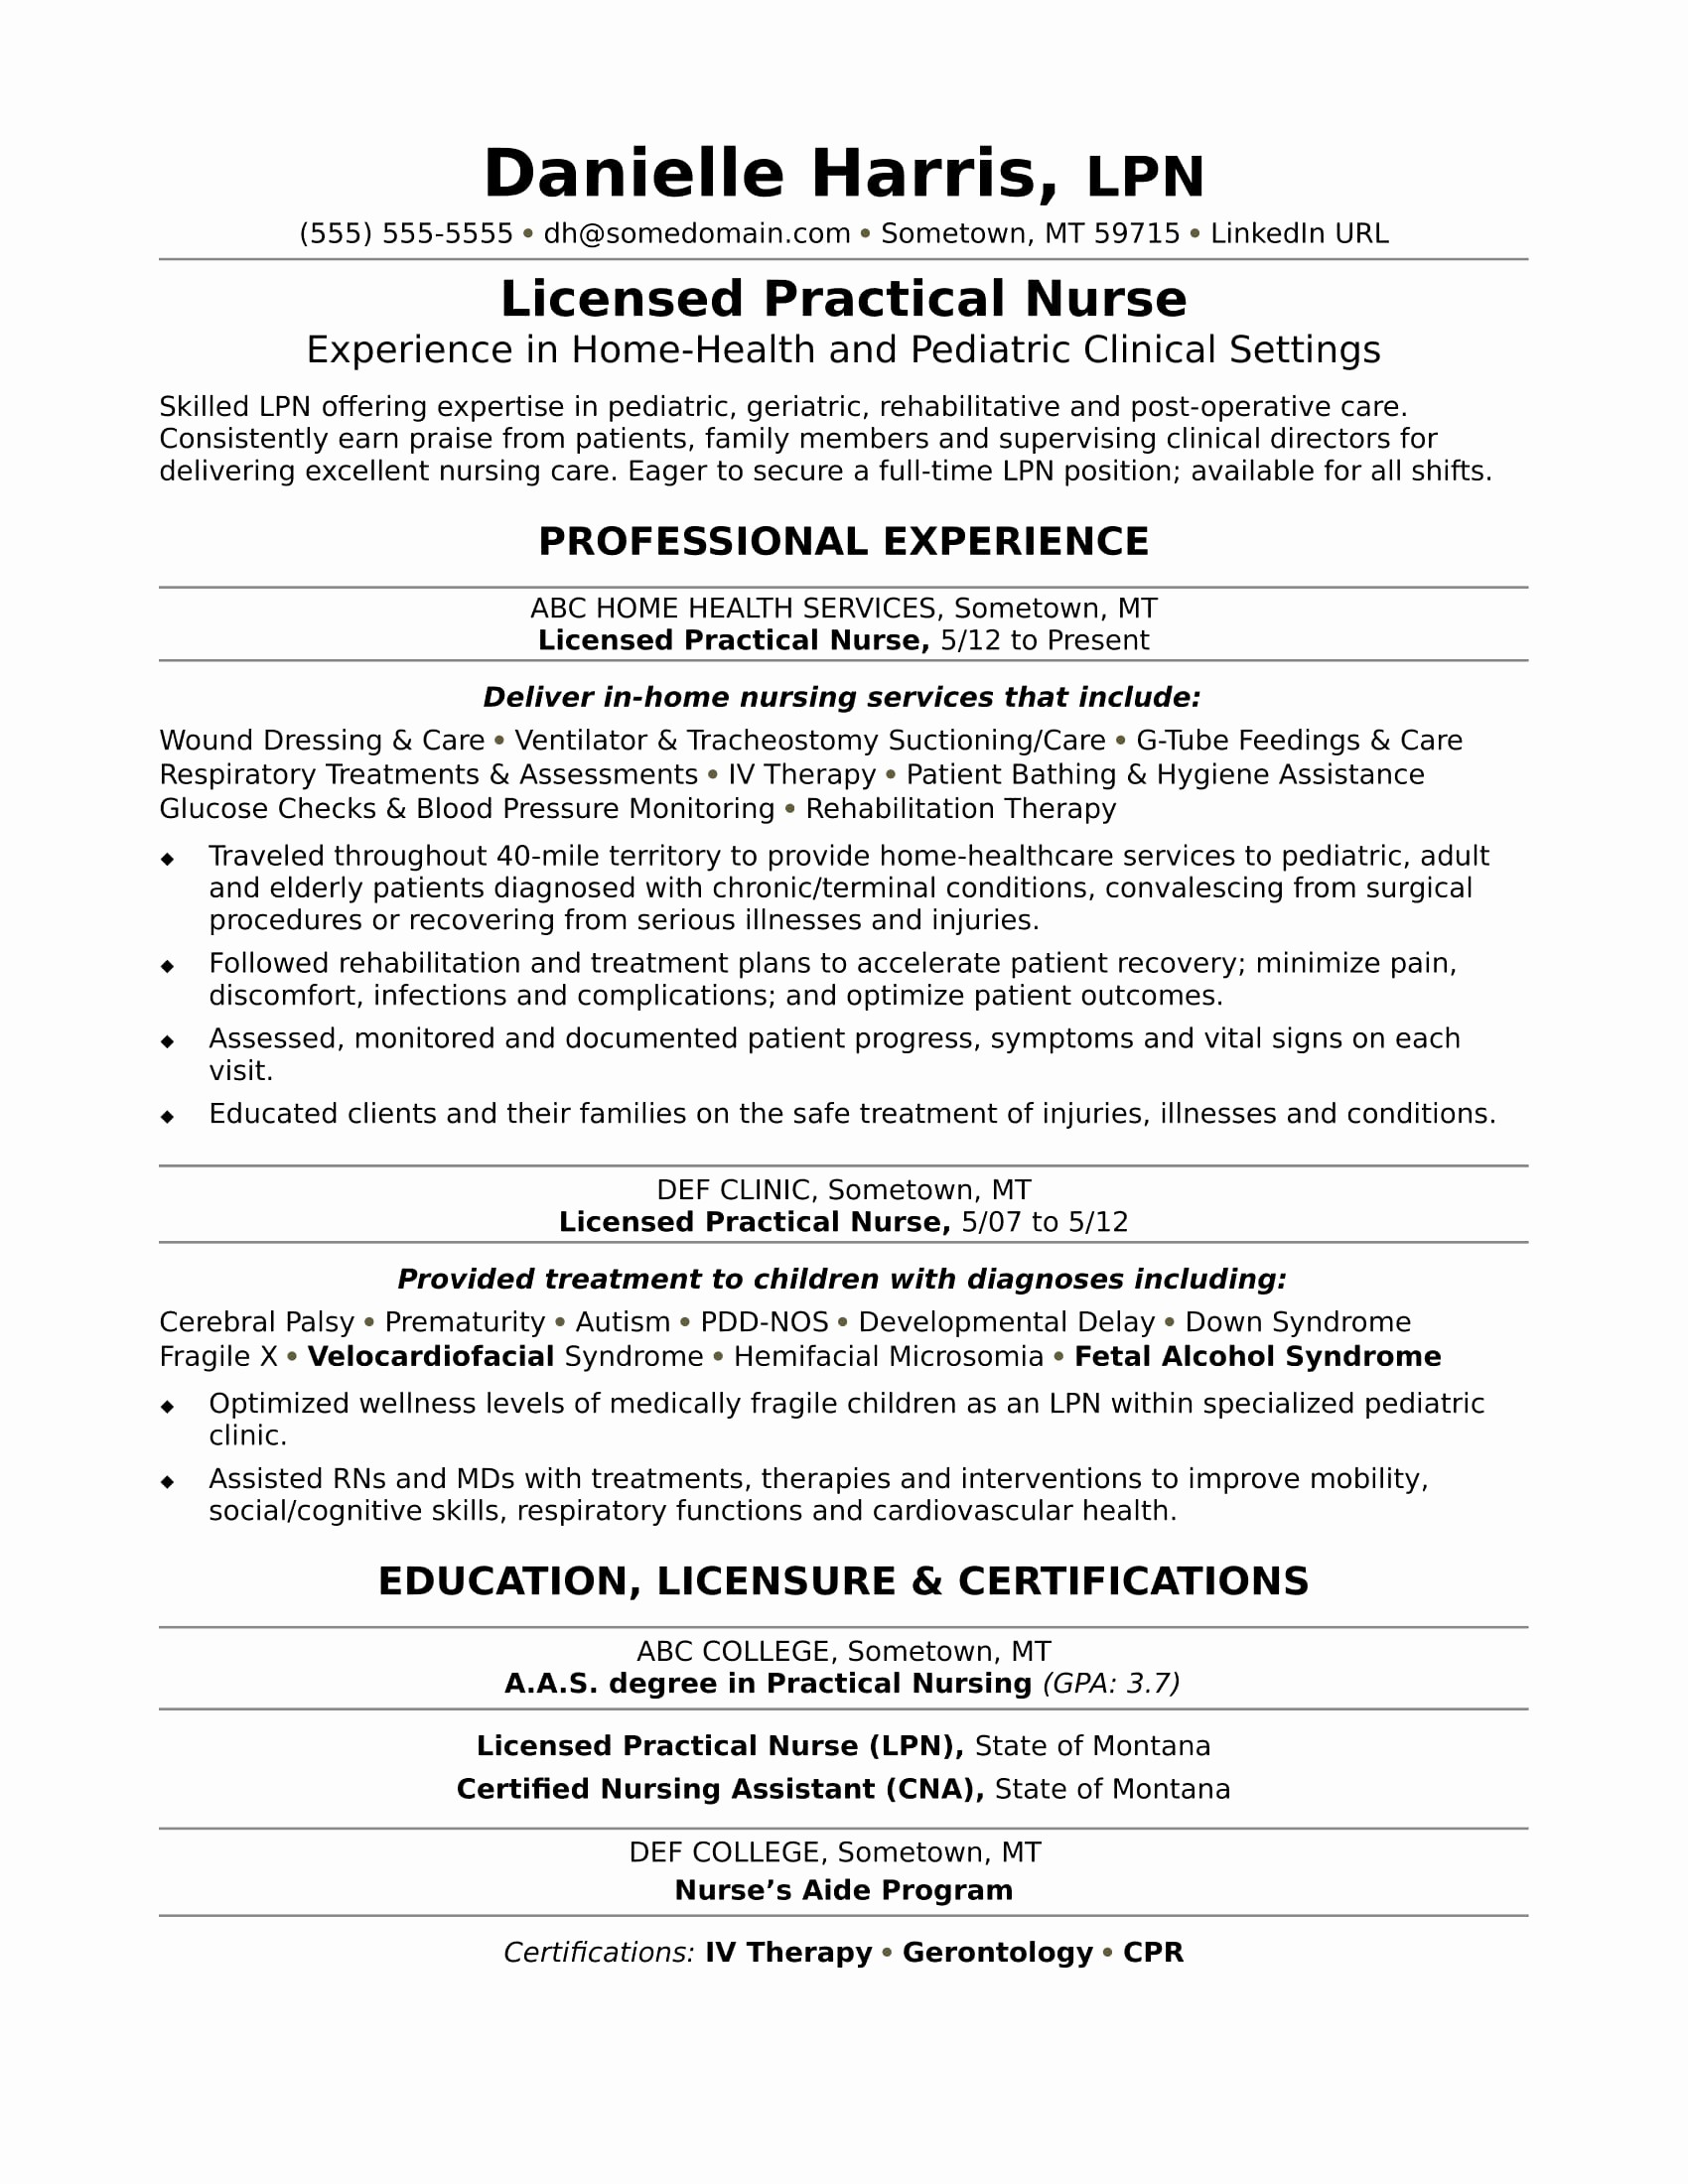 Massage therapy Resume Template - Massage therapy Resume Beautiful Massage Resume Template Best How to